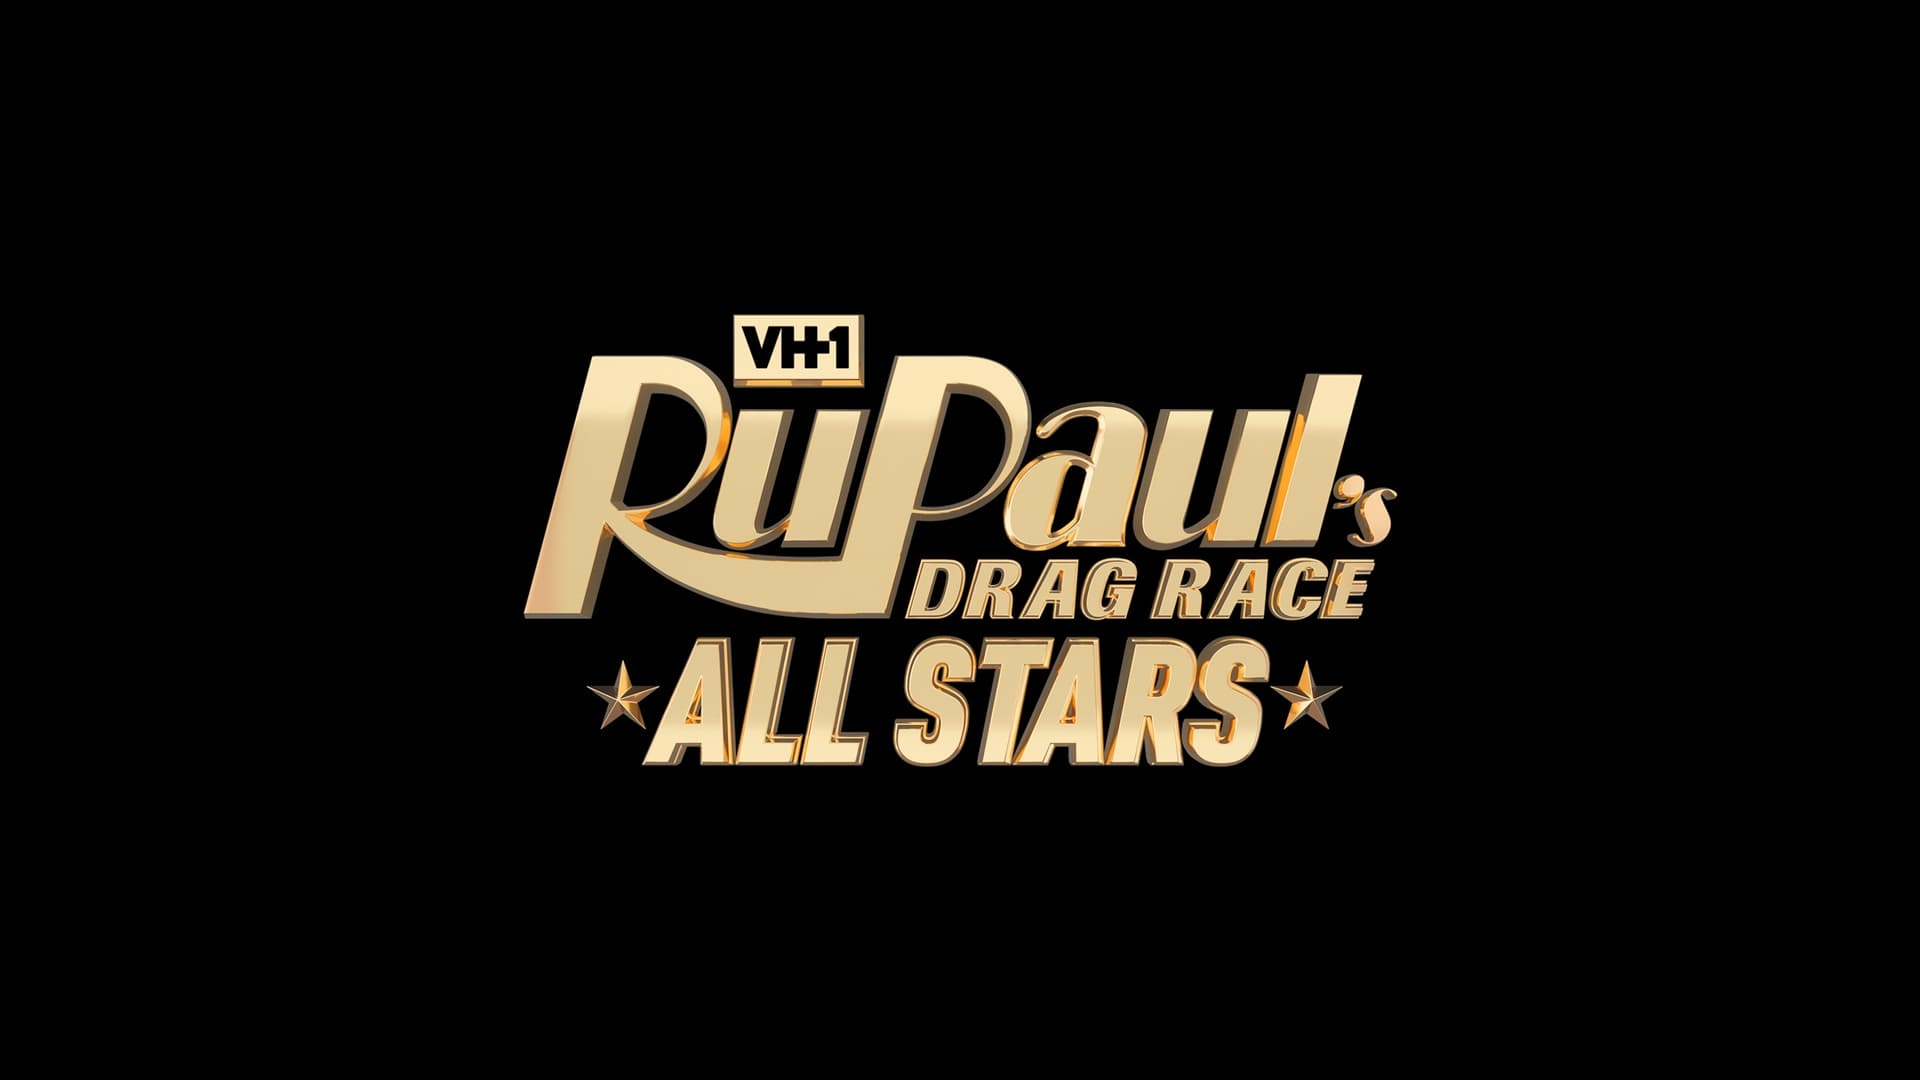 Rupauls Drag Race Christmas Special Watch Online Free December 2020 Watch~[Online]! RuPaul's Drag Race All Stars Season 5, Episode 1